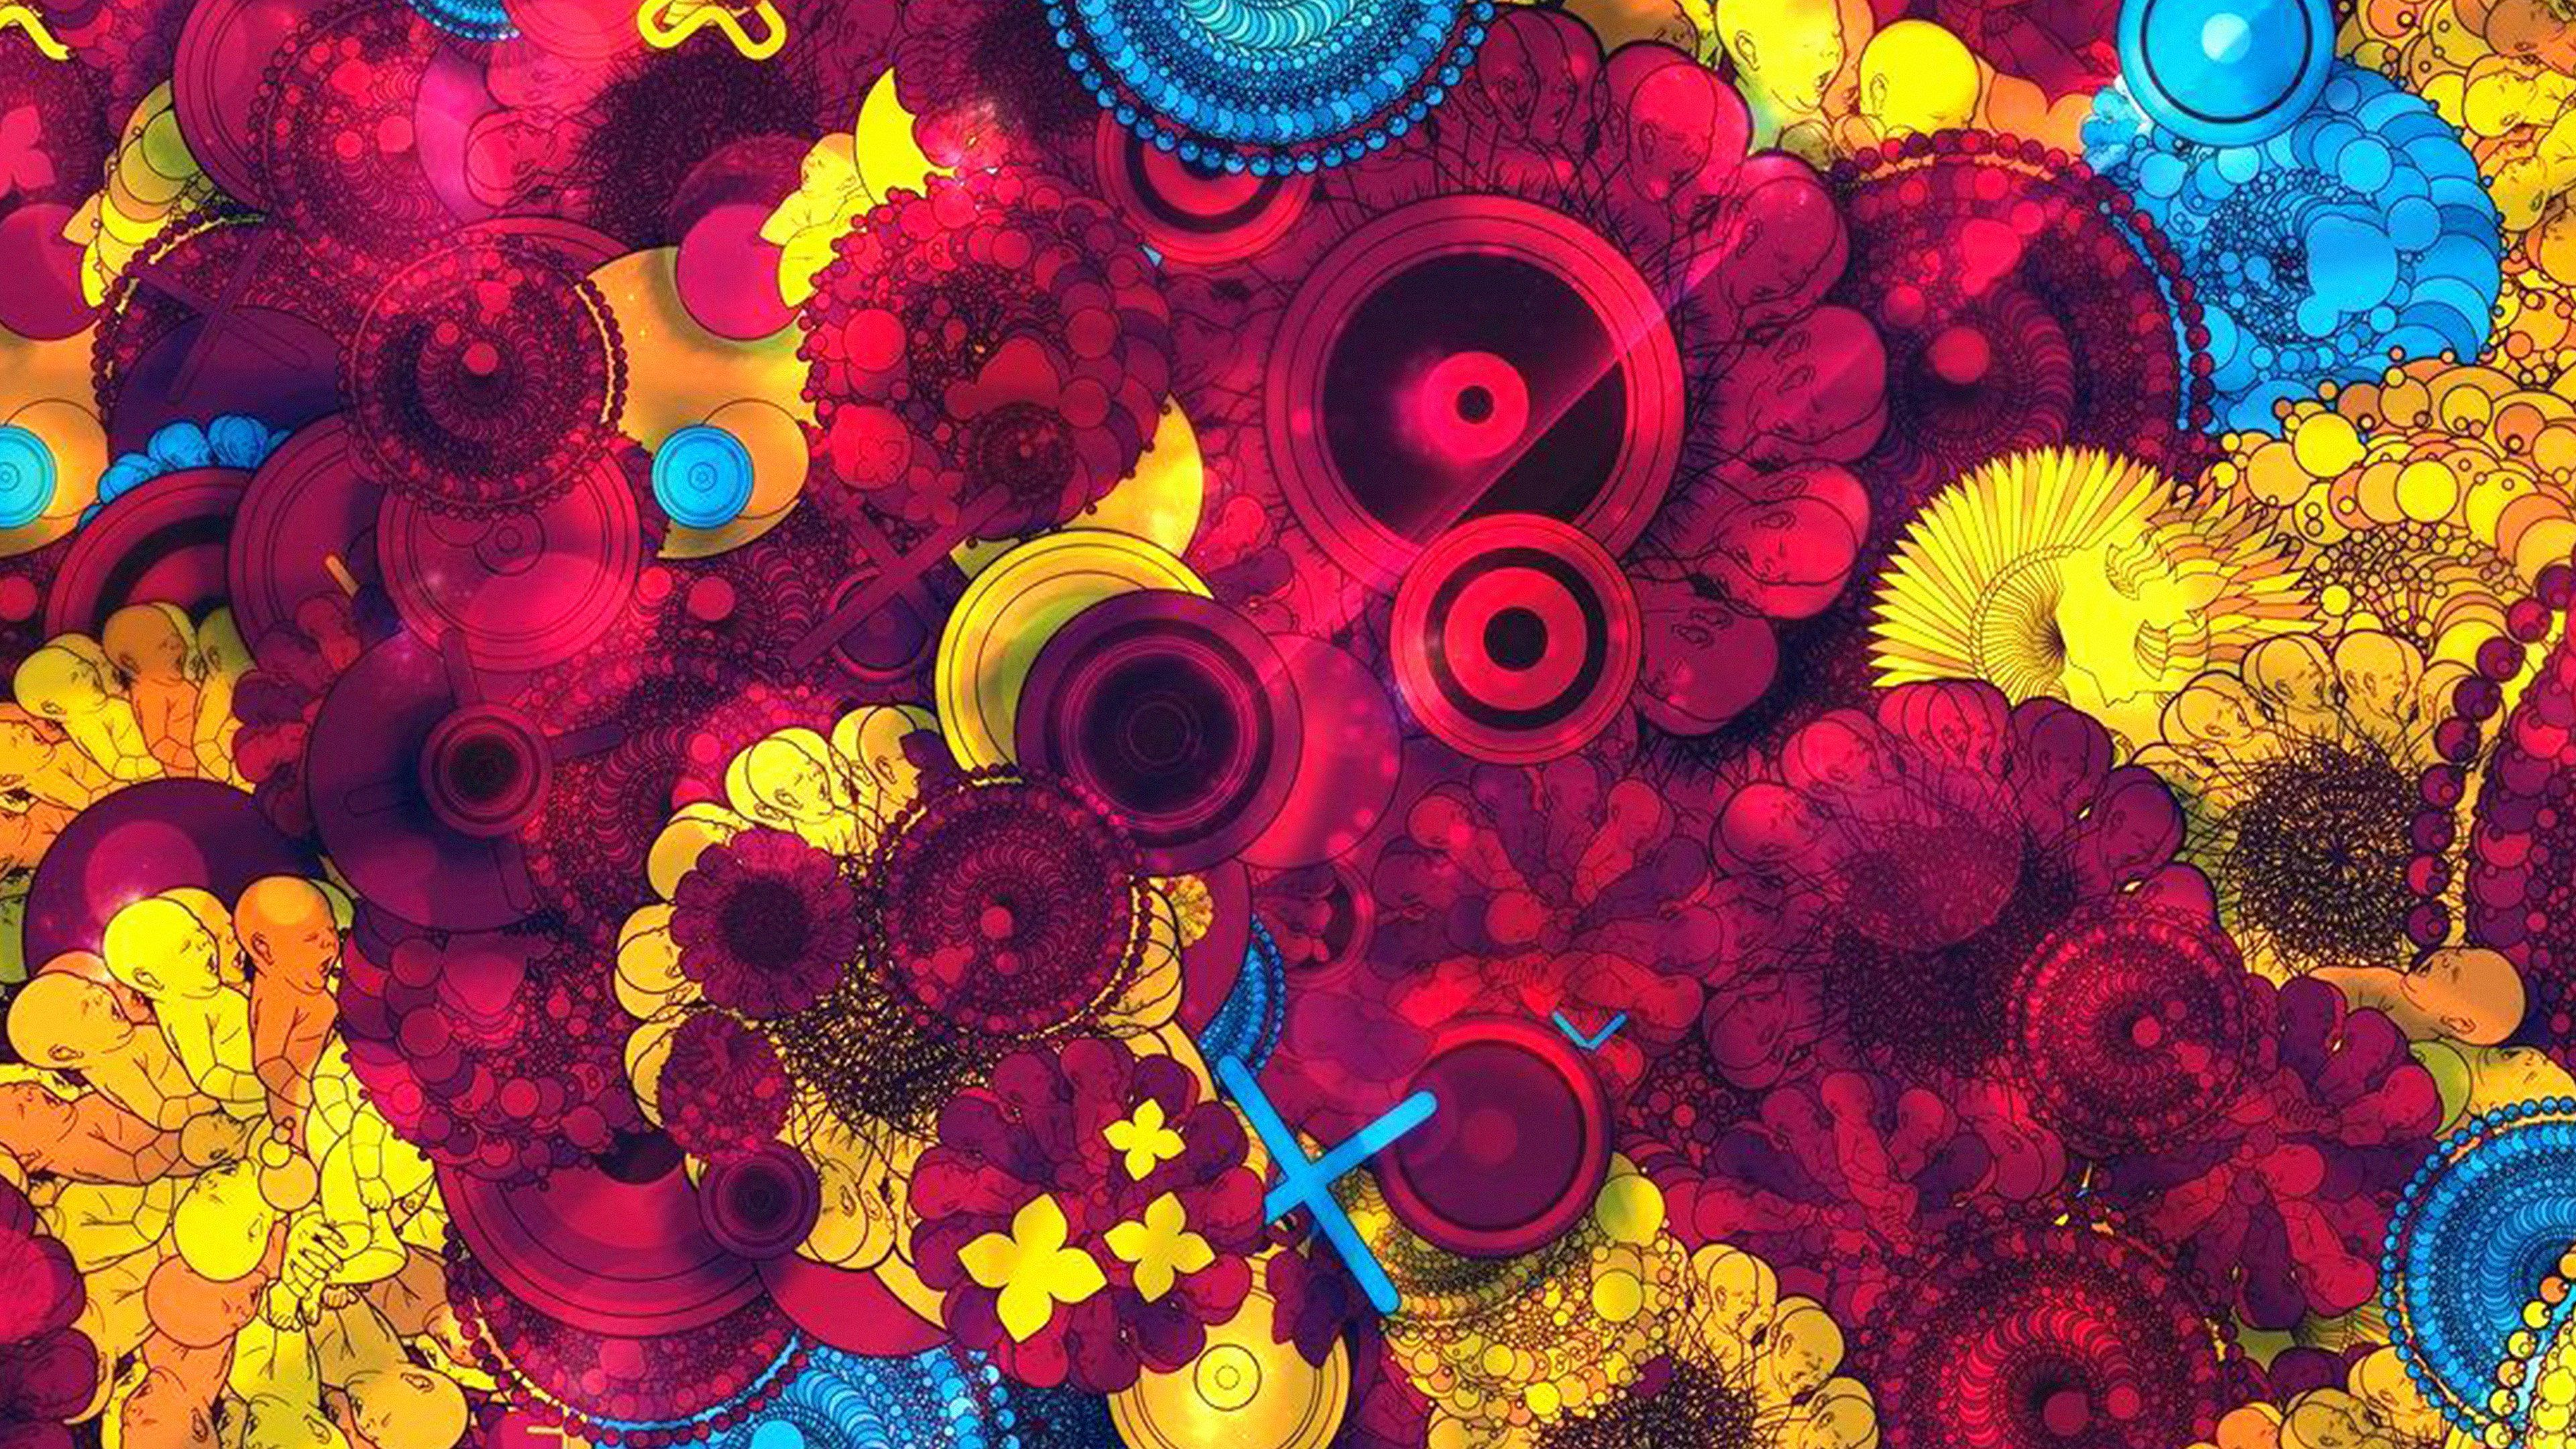 3840x2160 vq58-abstract-art-red-blue-yellow-color-pattern-wallpaper